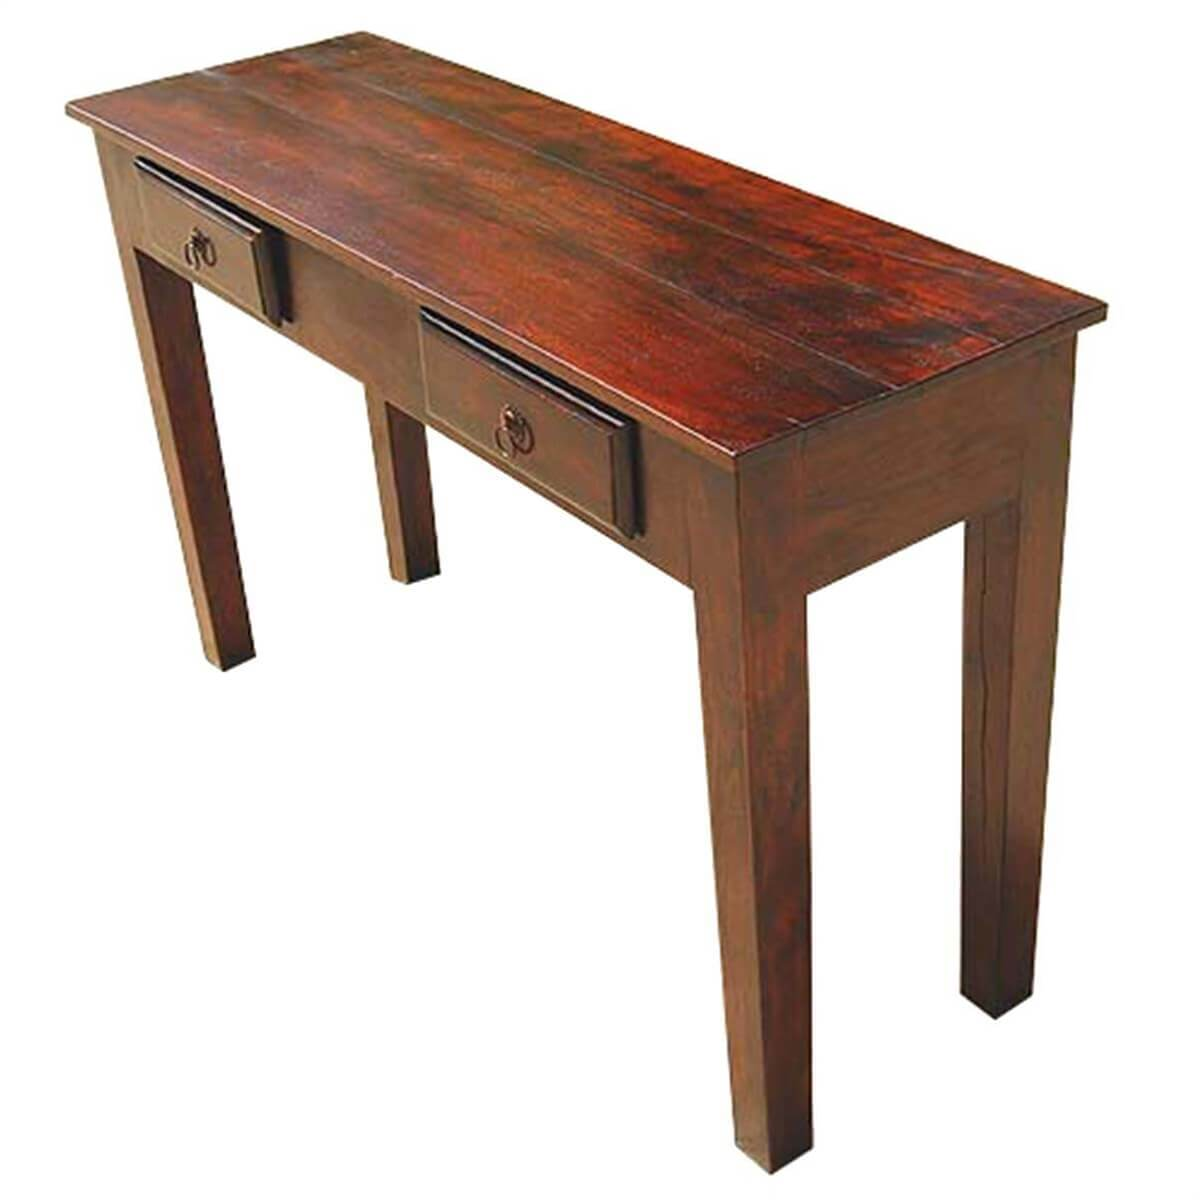 Foyer Hallway Table : Wood storage drawers console hall entry way foyer table